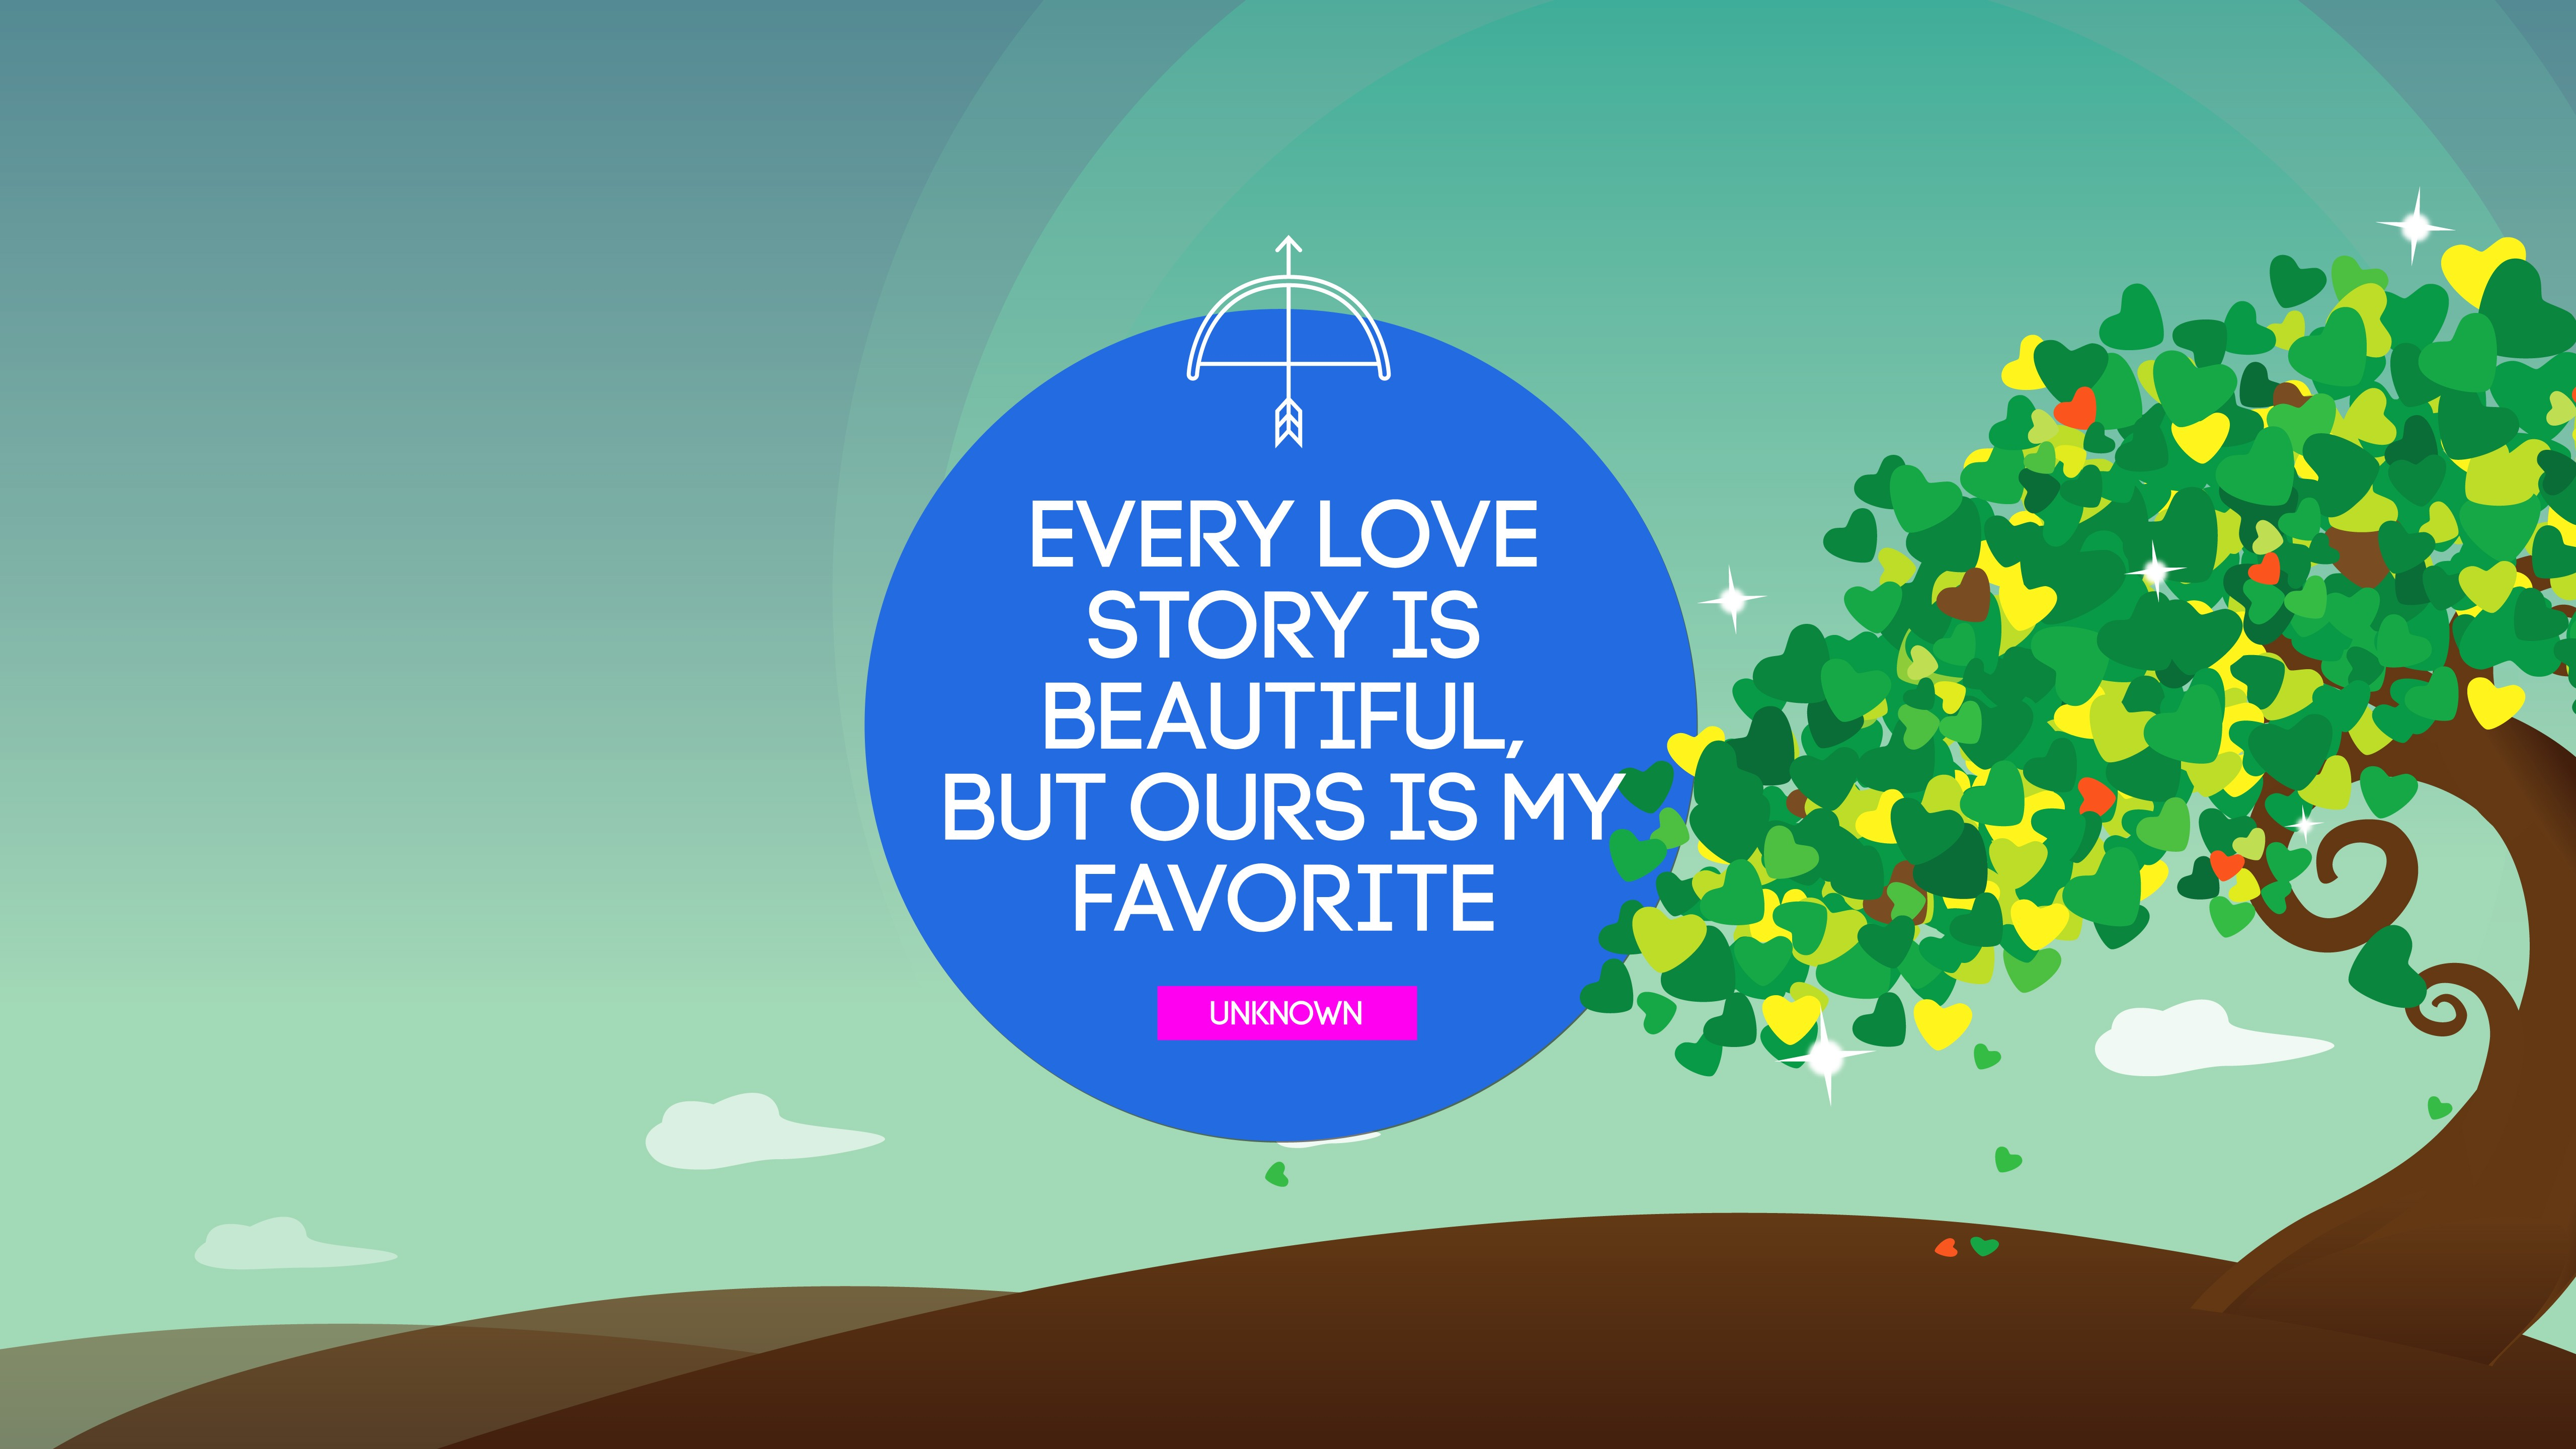 beautiful_favorite_love_story_quote-5120x2880